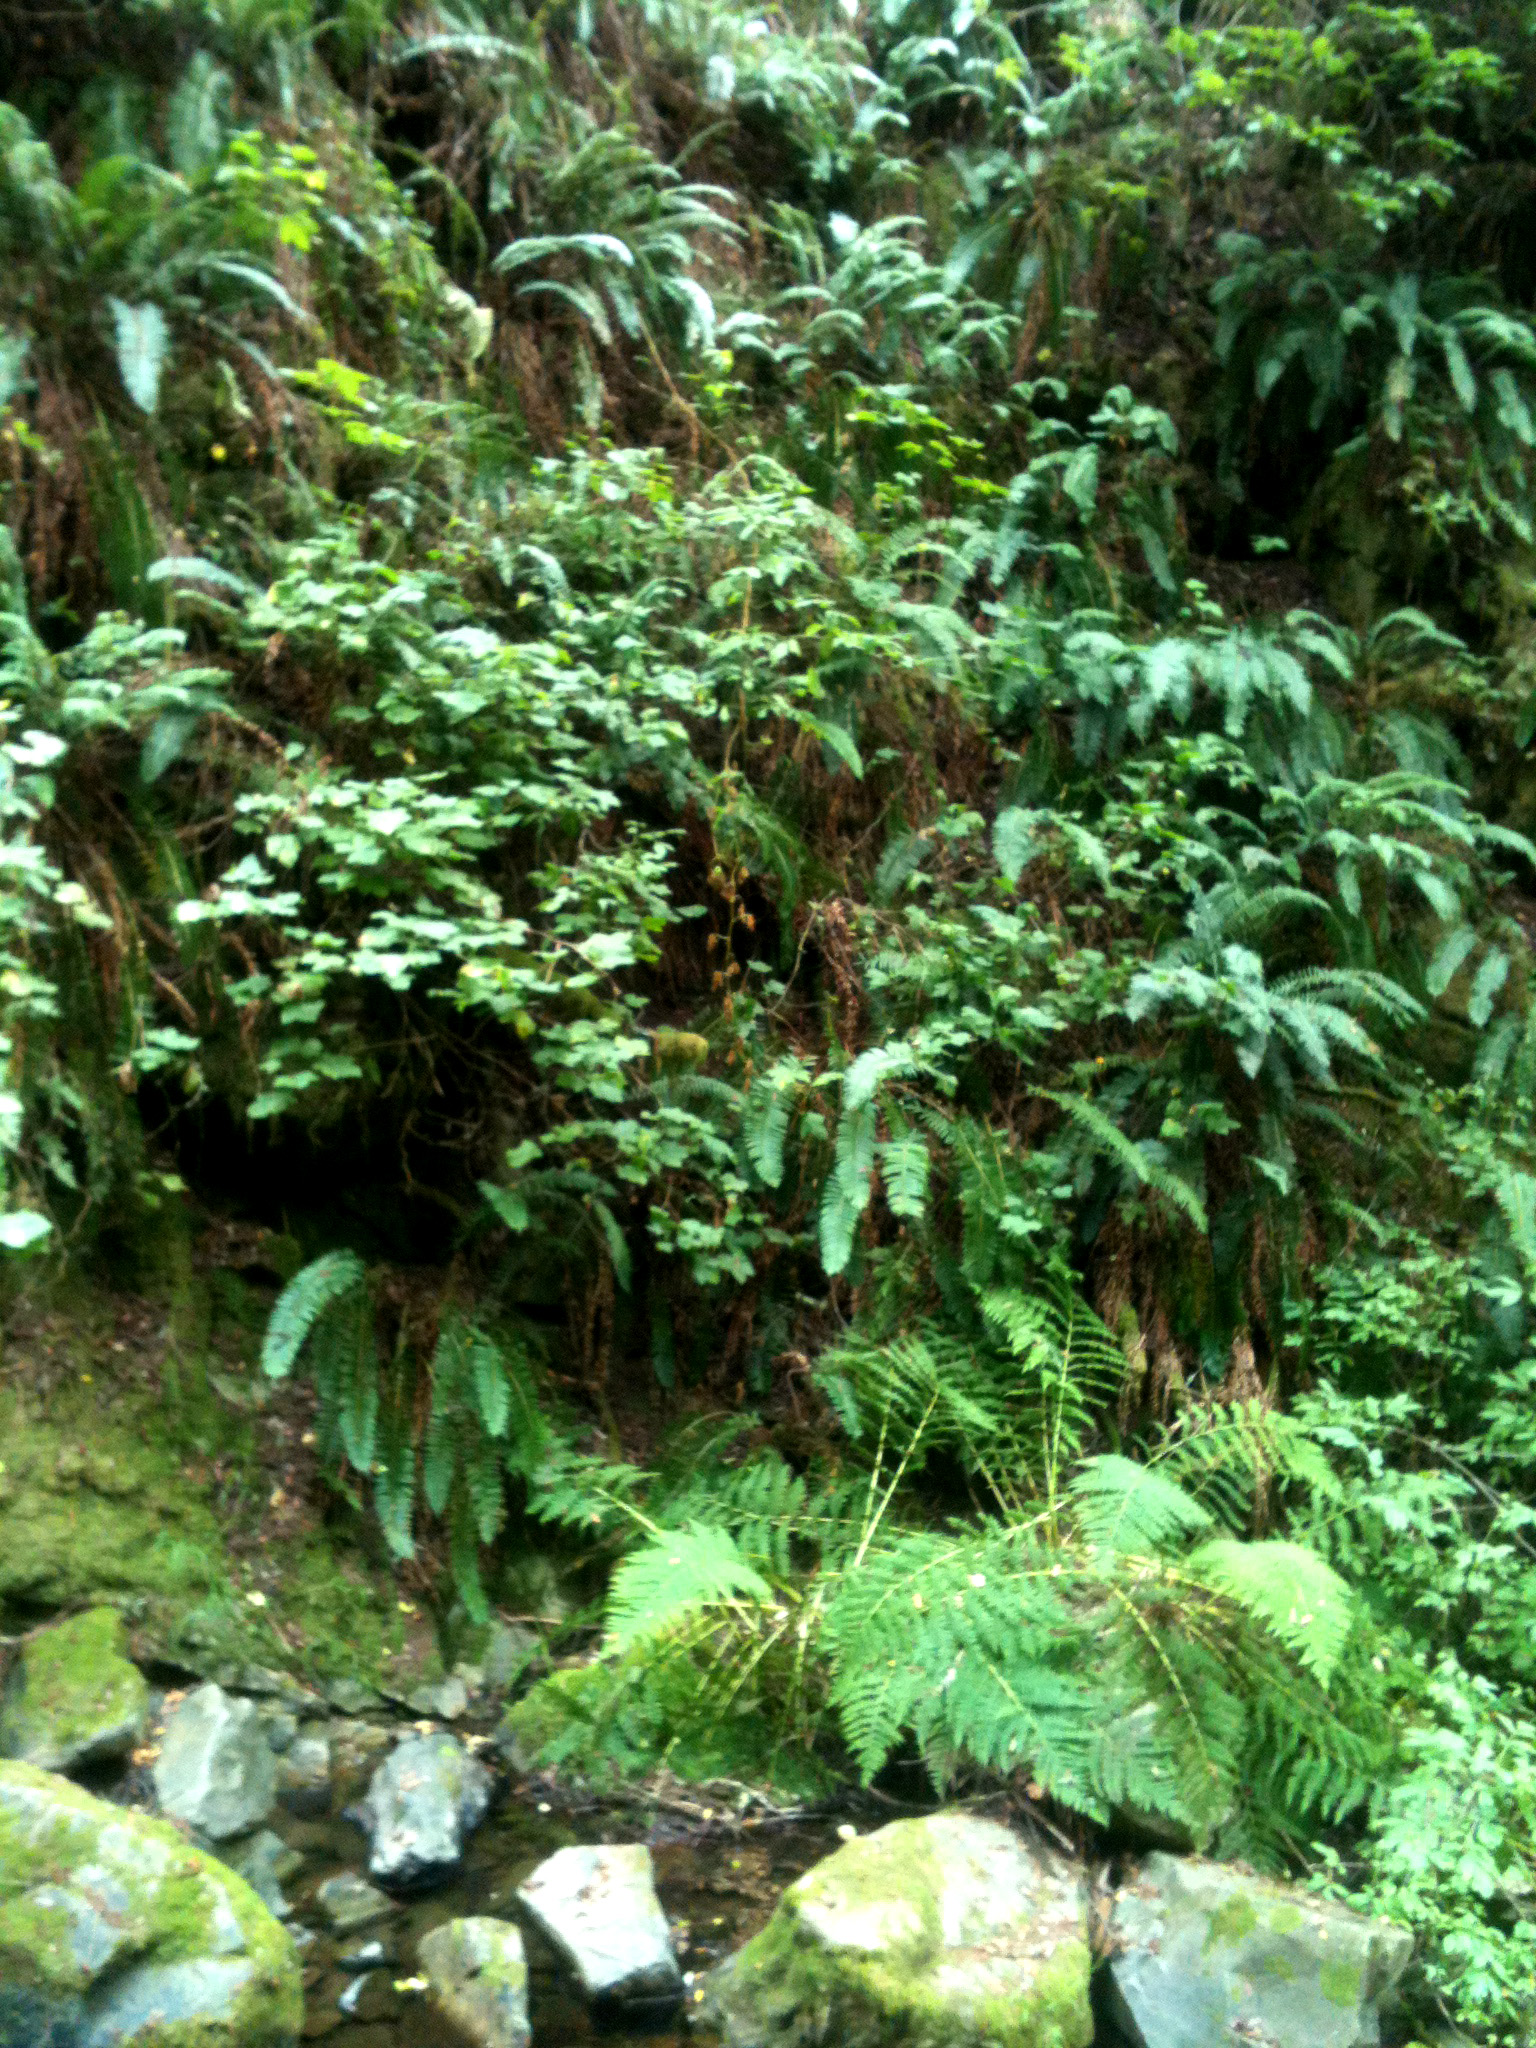 Lush ferns and walking along a creek.